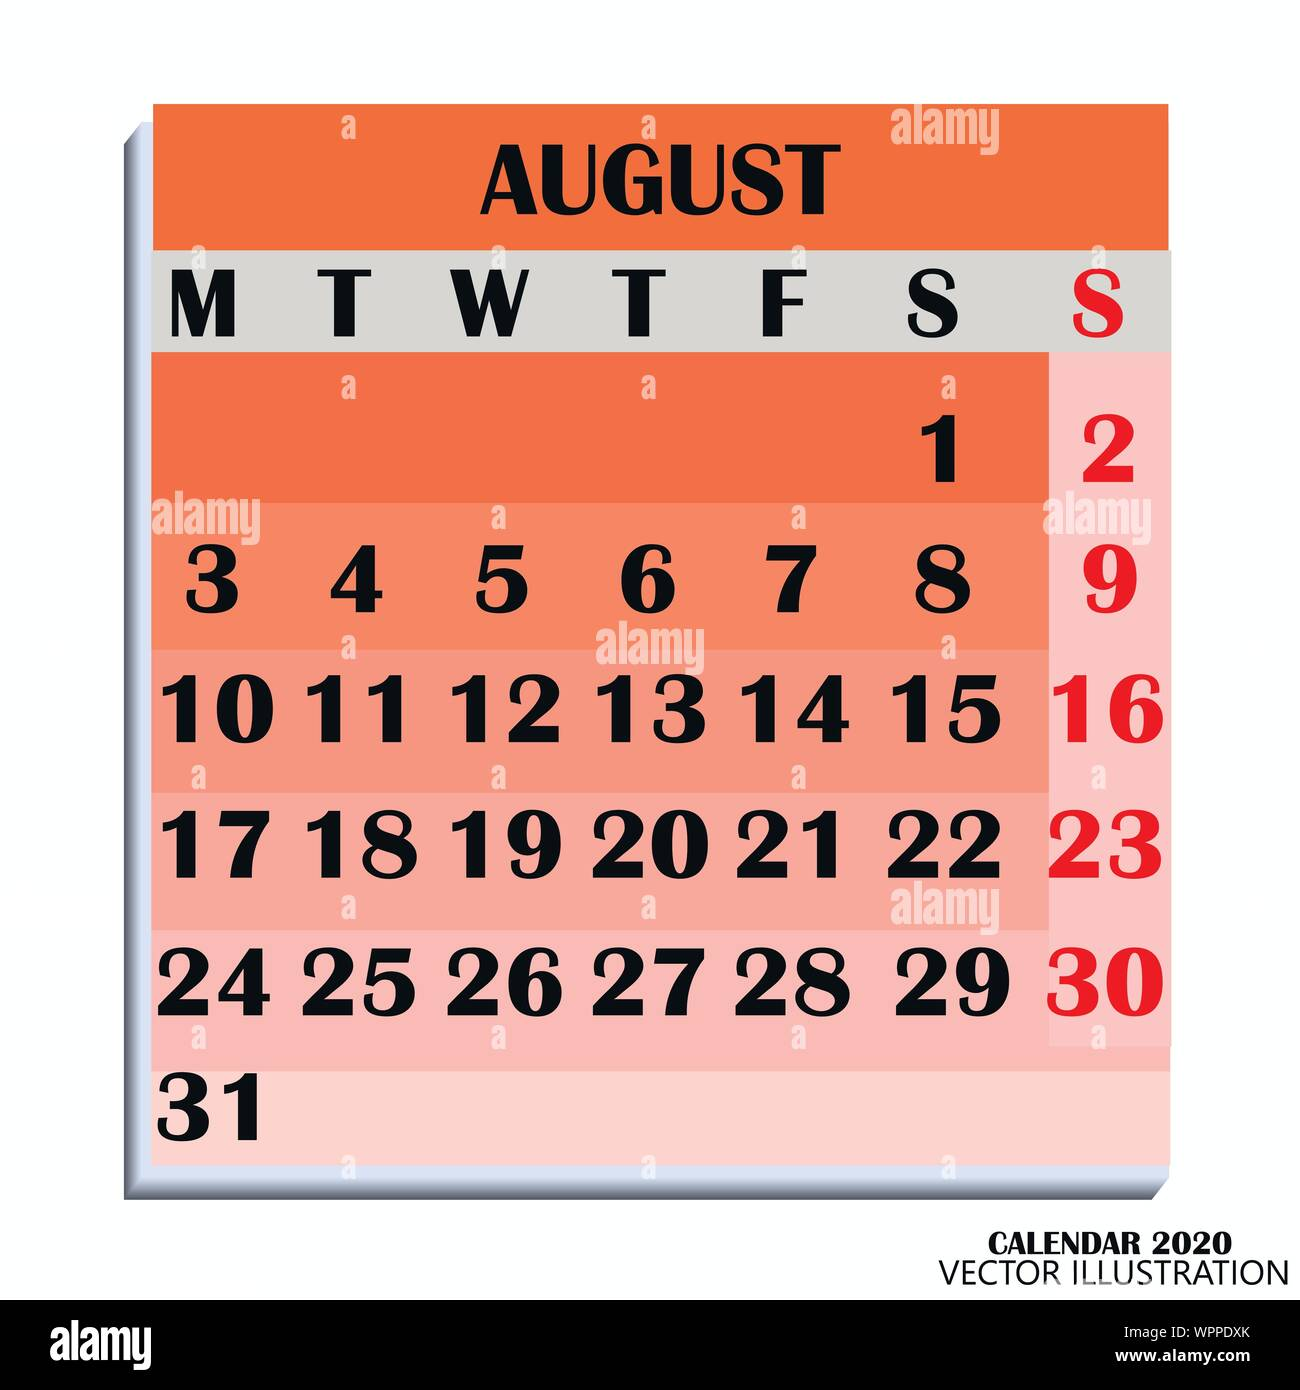 Calendario Mensile Agosto 2020.Calendar Month August Immagini Calendar Month August Fotos